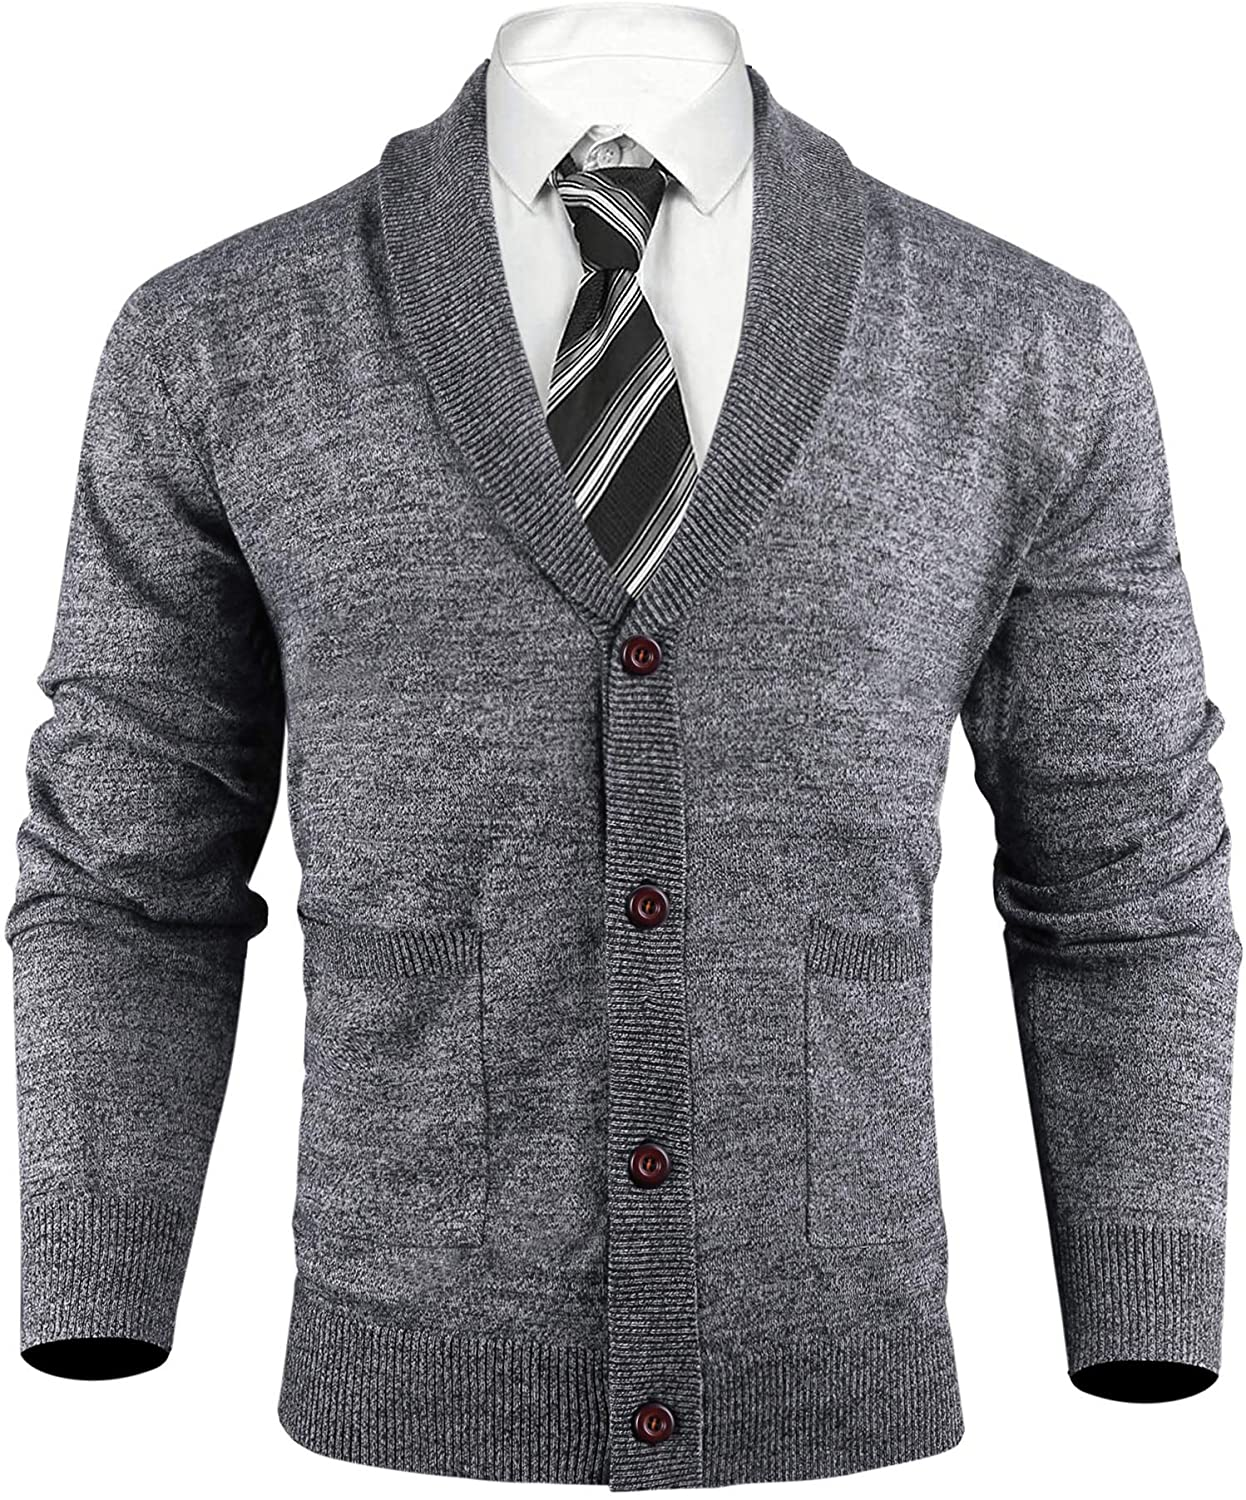 iClosam Mens Cardigan Lightweight Knitwear Button V-Neck Slim Fit Knitted Xmas Cardigans Sweater with Two Front Pockets S-XXL